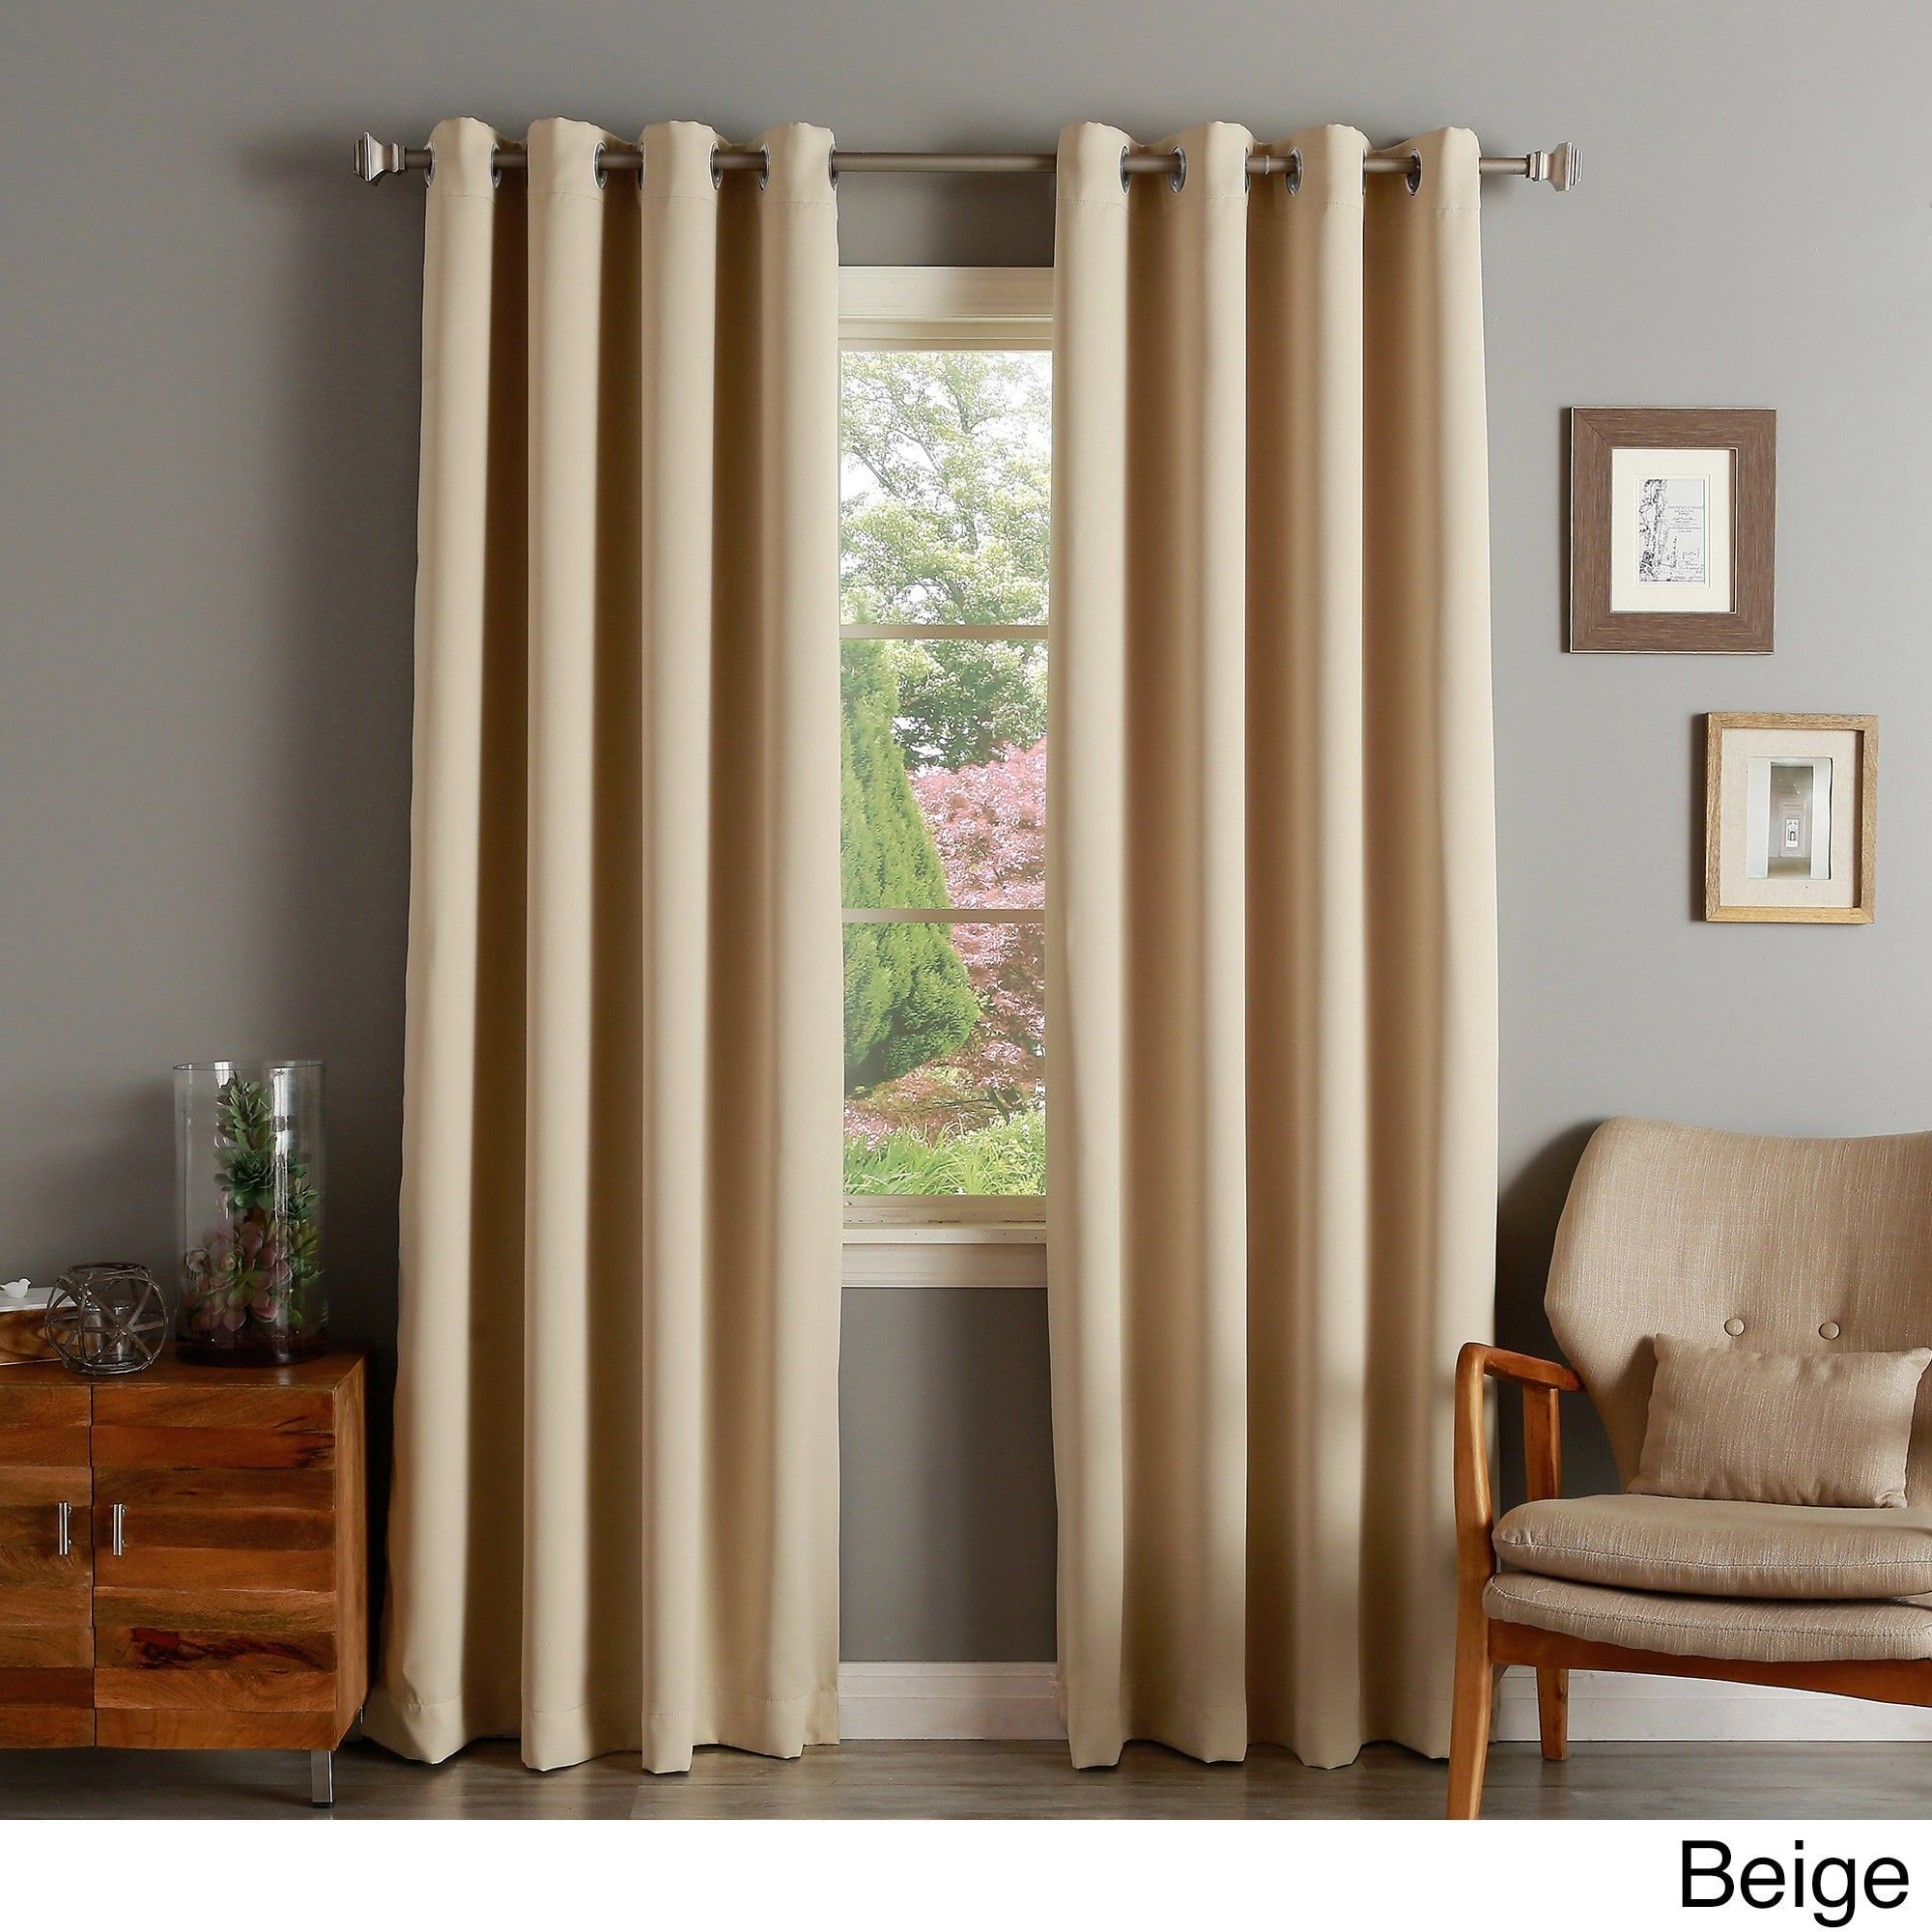 curtains drapes pinch insulated thermal patio clever org l handballtunisie curtain door panel